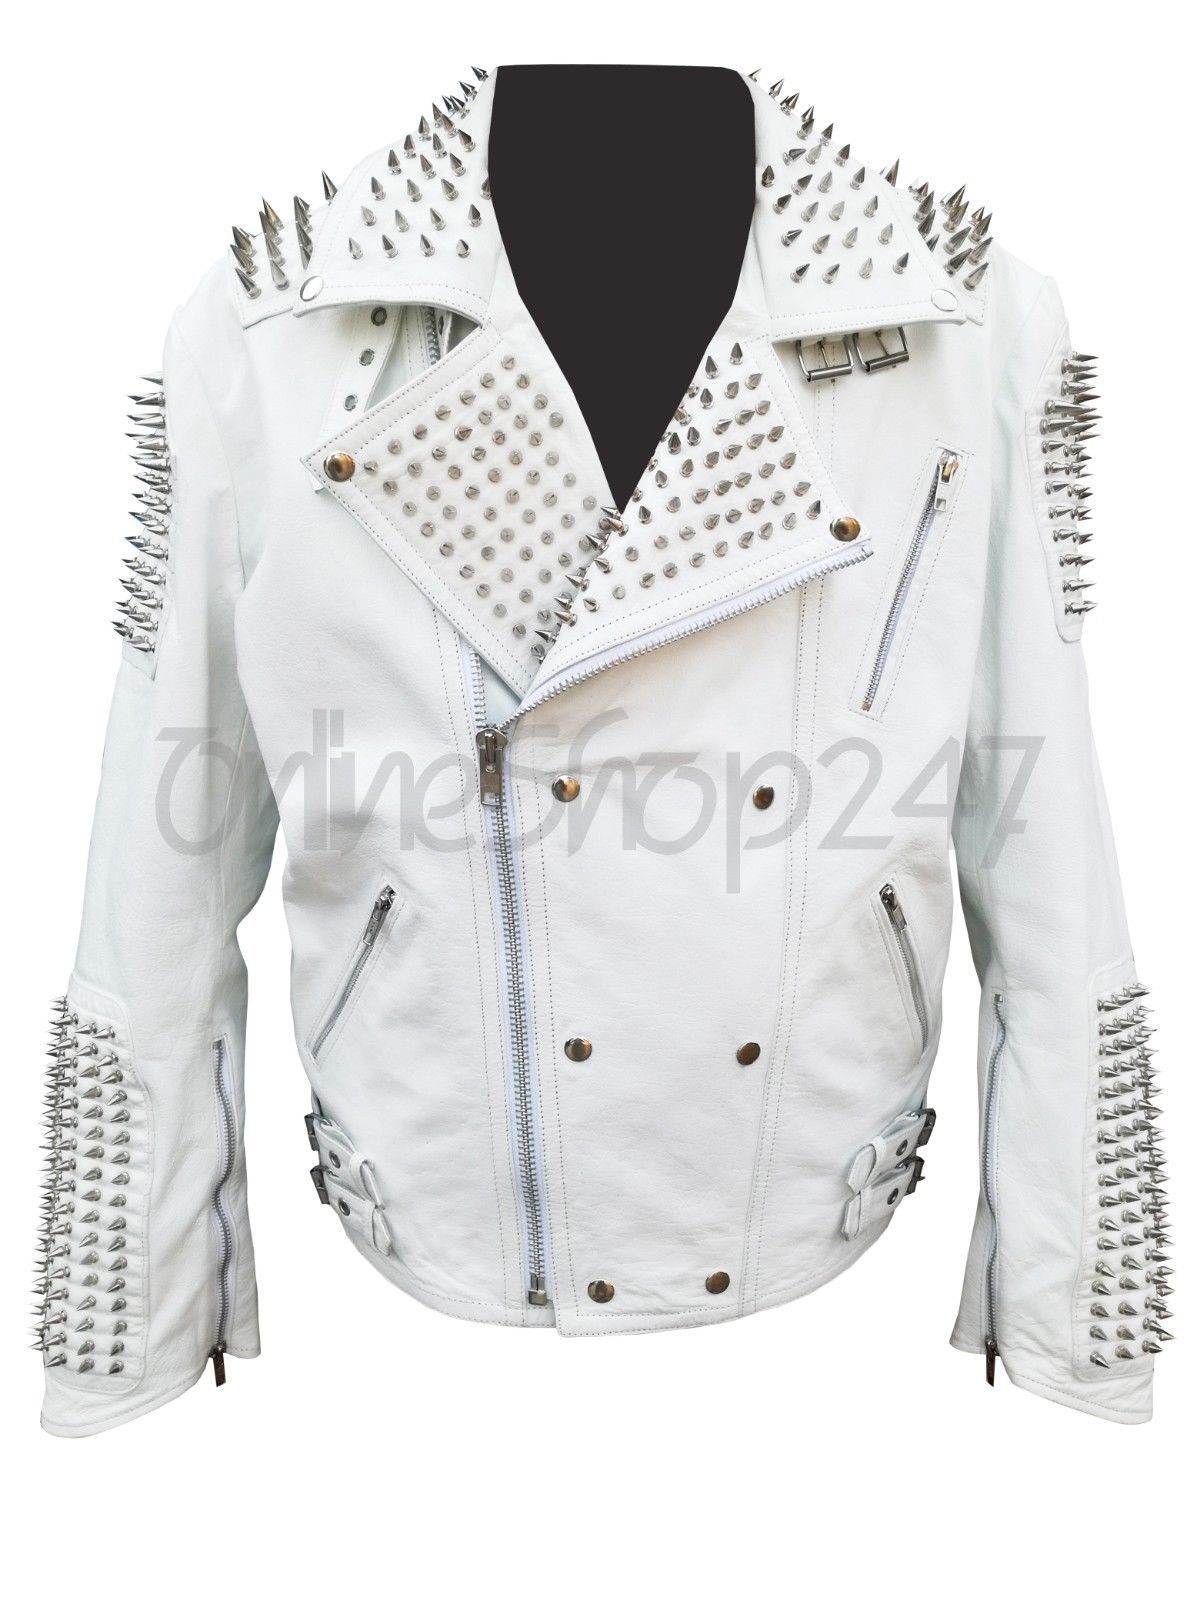 New Mens Punk Rock White Full Long Spiked Studded Zipper Button Leather Jacket [ 1600 x 1200 Pixel ]